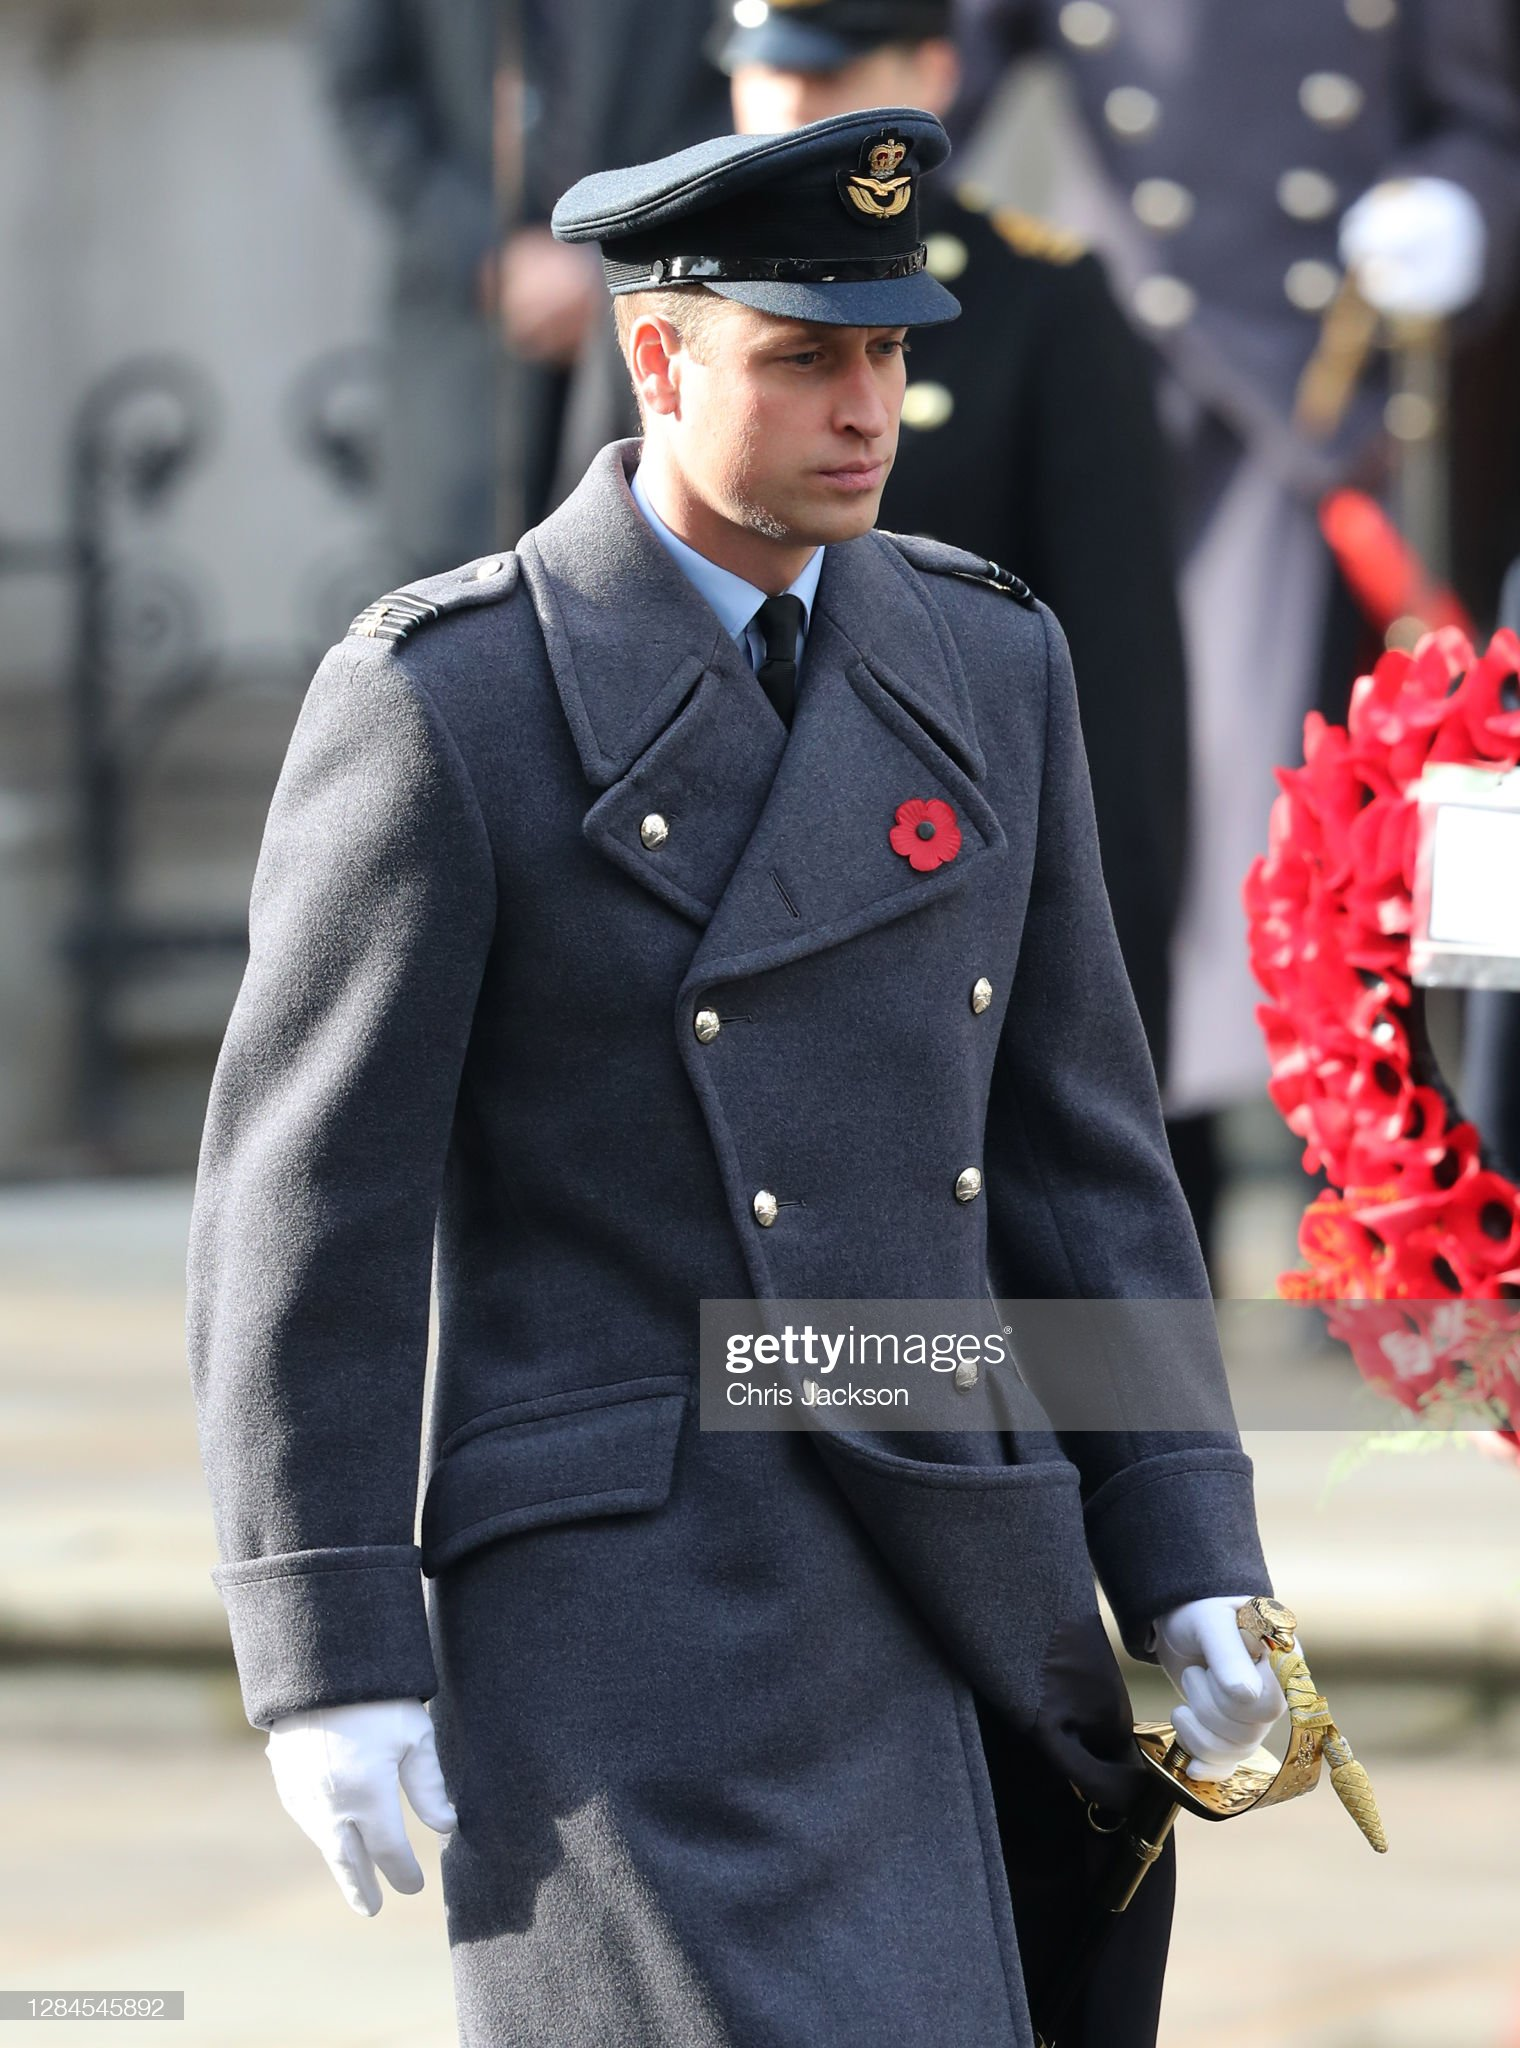 https://media.gettyimages.com/photos/prince-william-duke-of-cambridge-during-the-national-service-of-at-picture-id1284545892?s=2048x2048